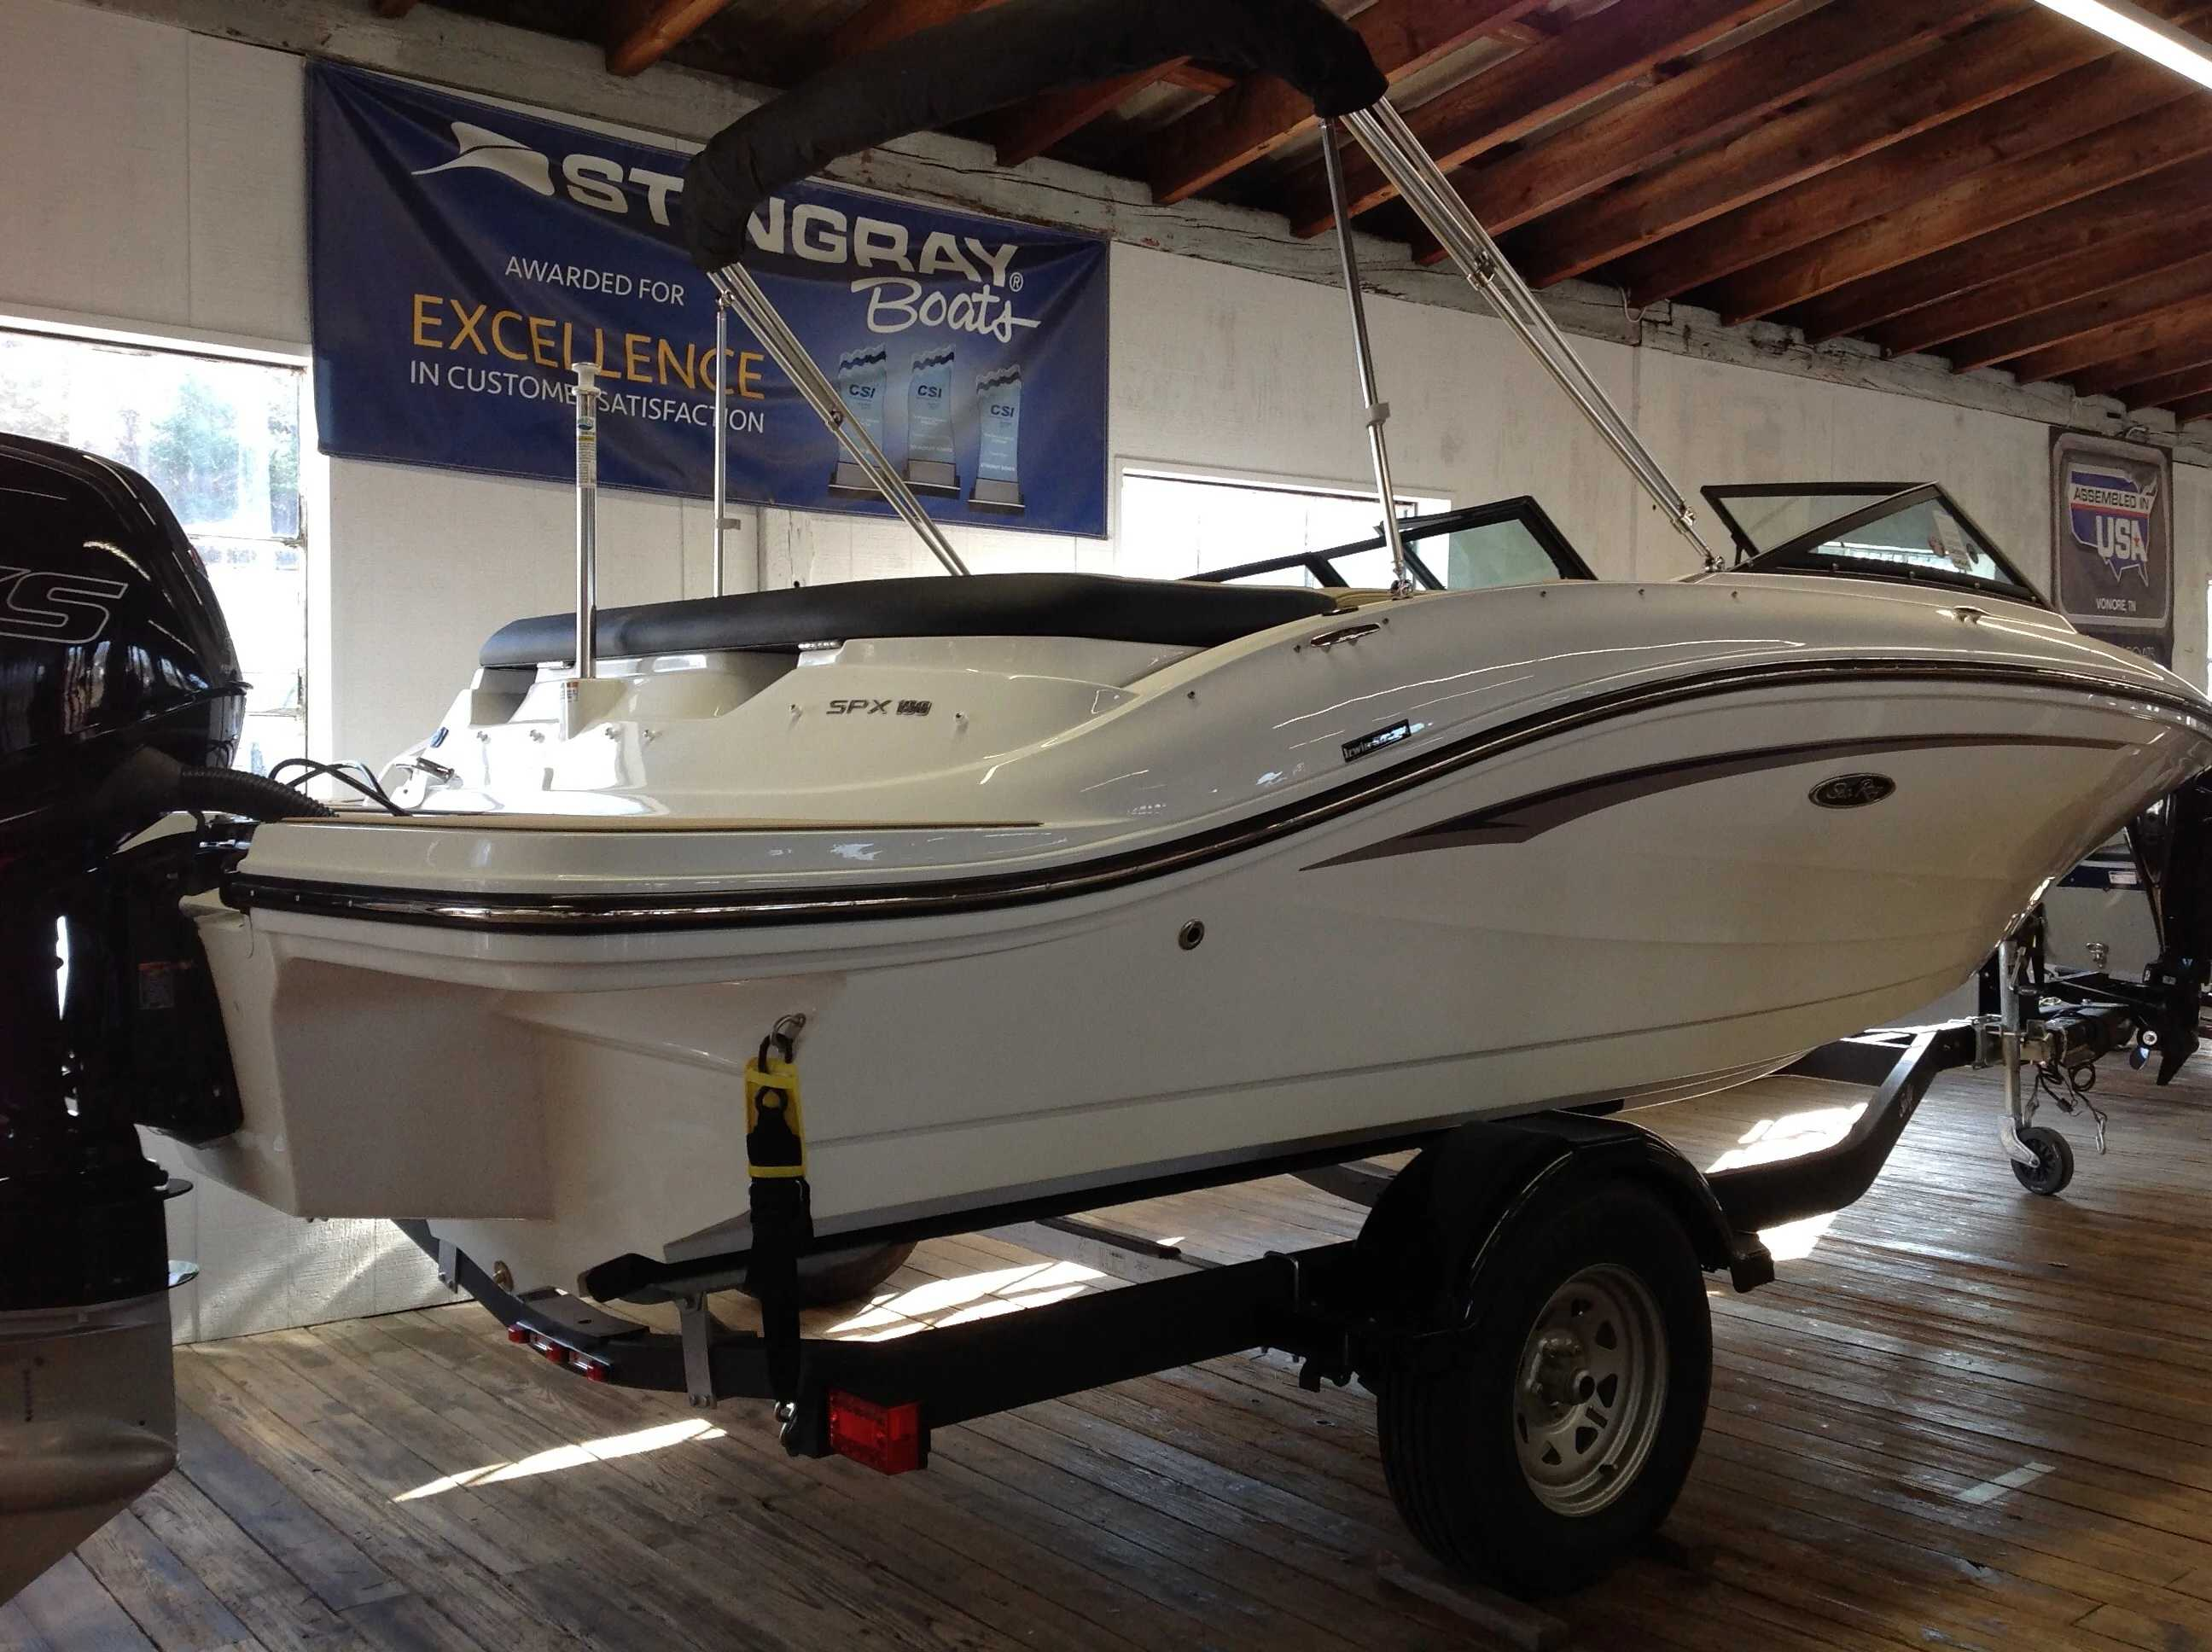 2021 Sea Ray boat for sale, model of the boat is 190 spxo & Image # 4 of 14